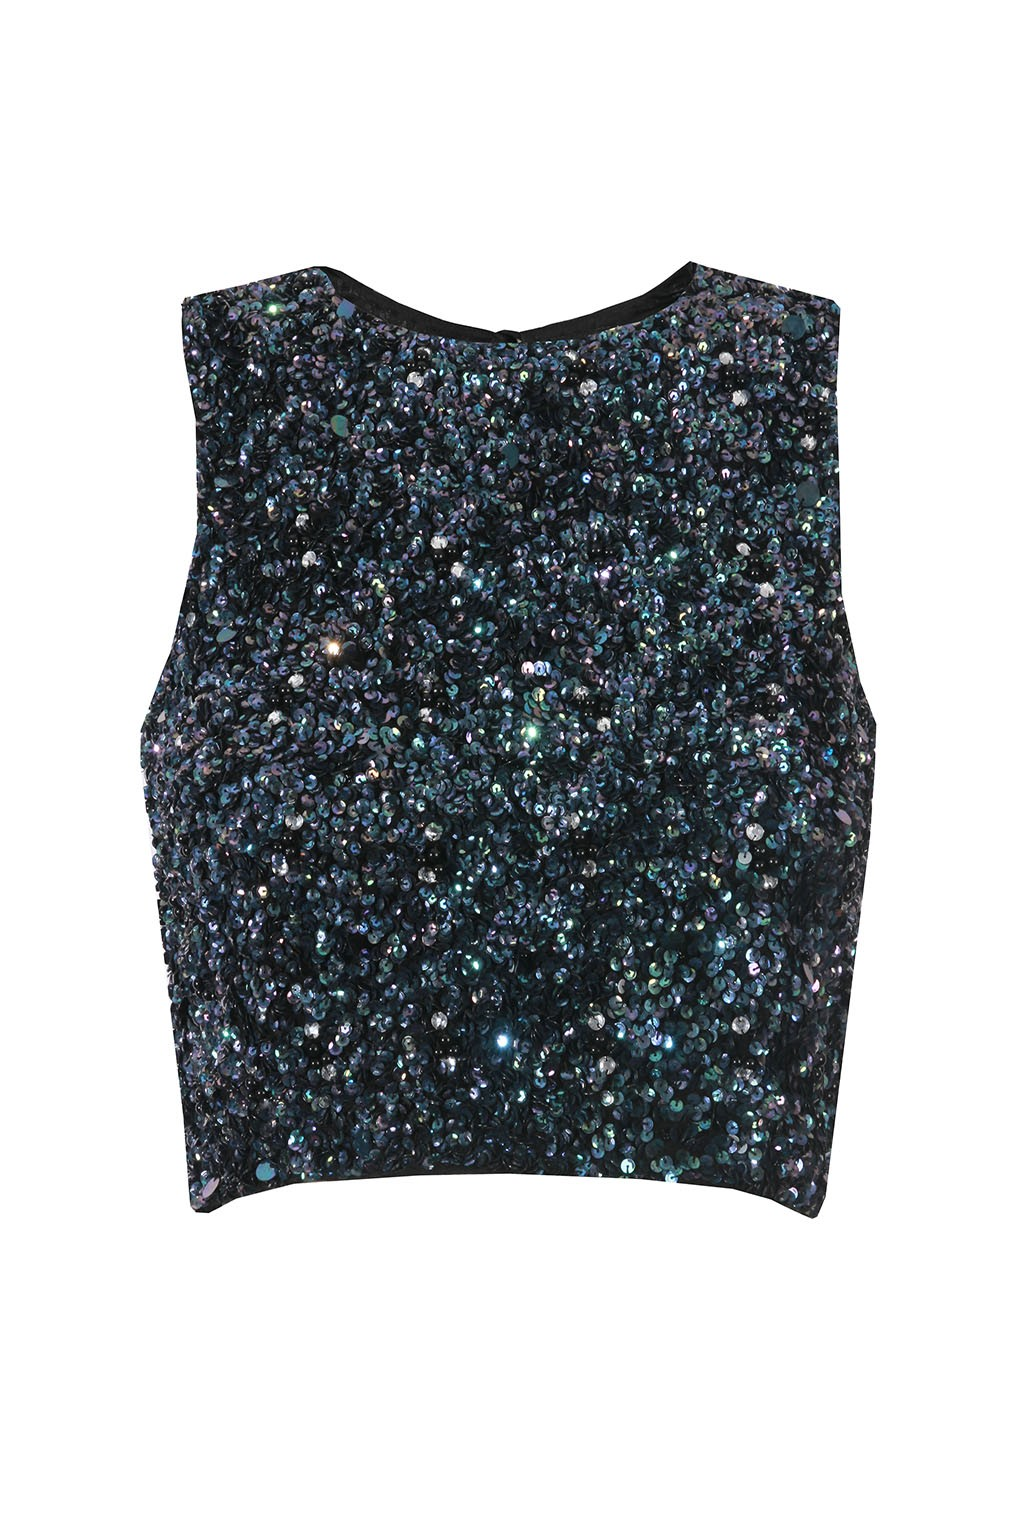 River Island Sequin Top